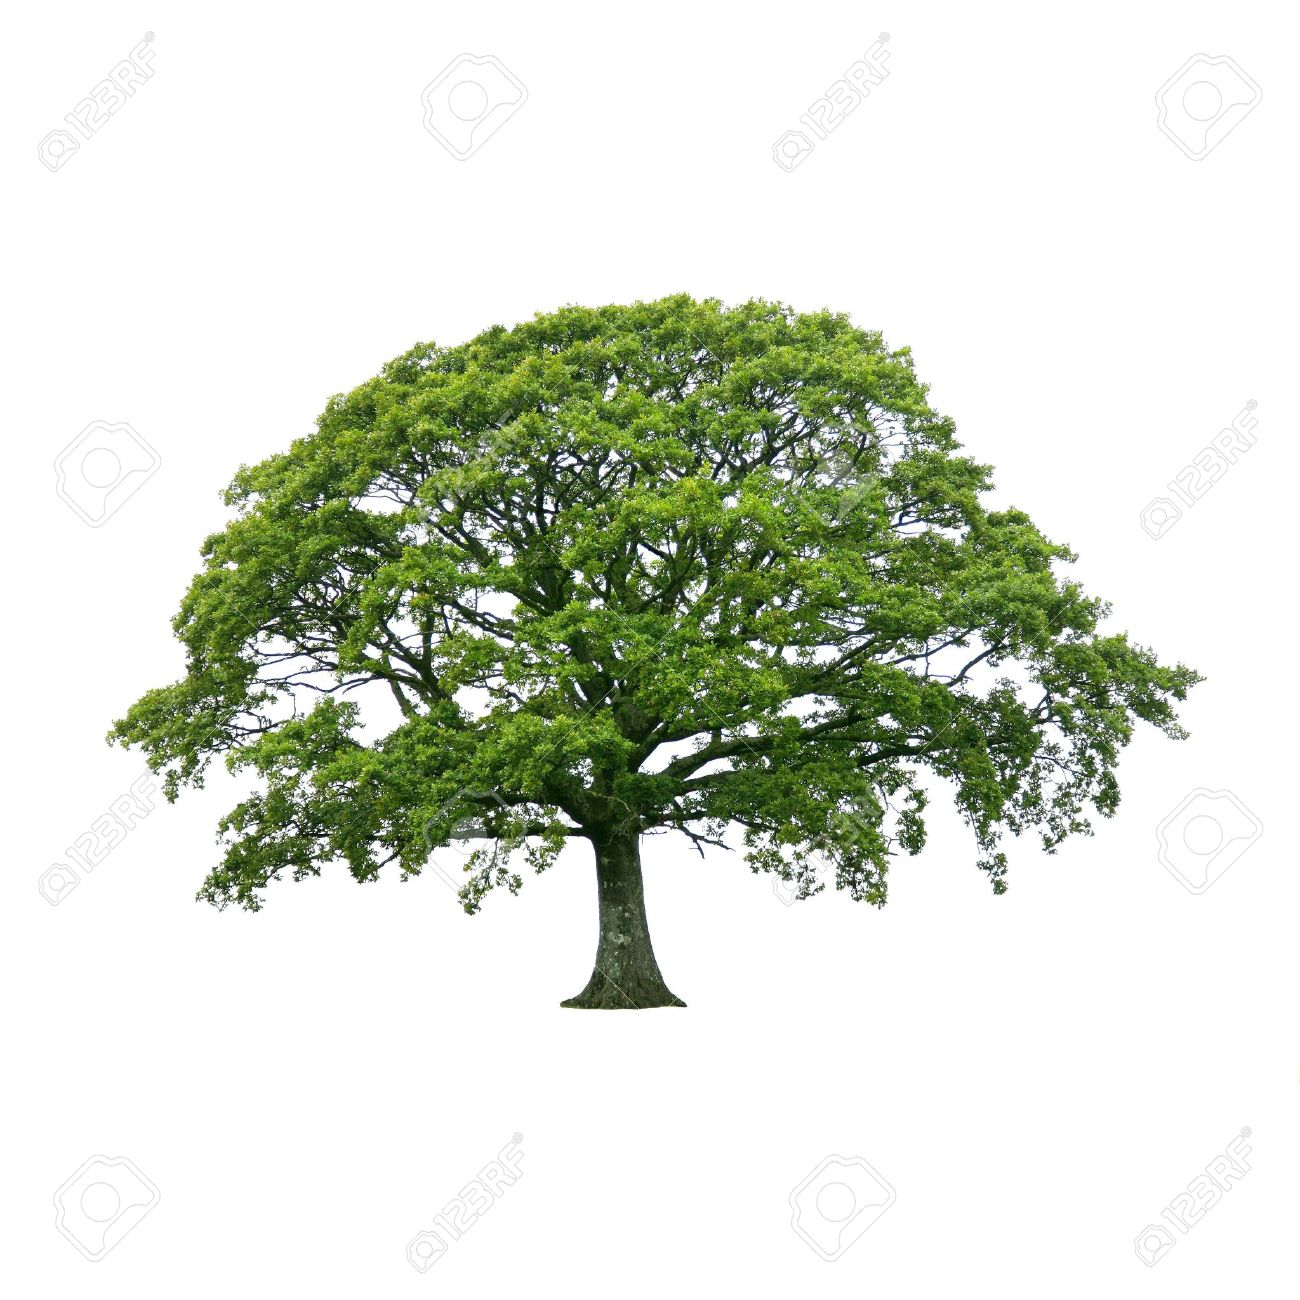 Oak tree in full leaf in summer, isolated over white background. Stock Photo - 5254384